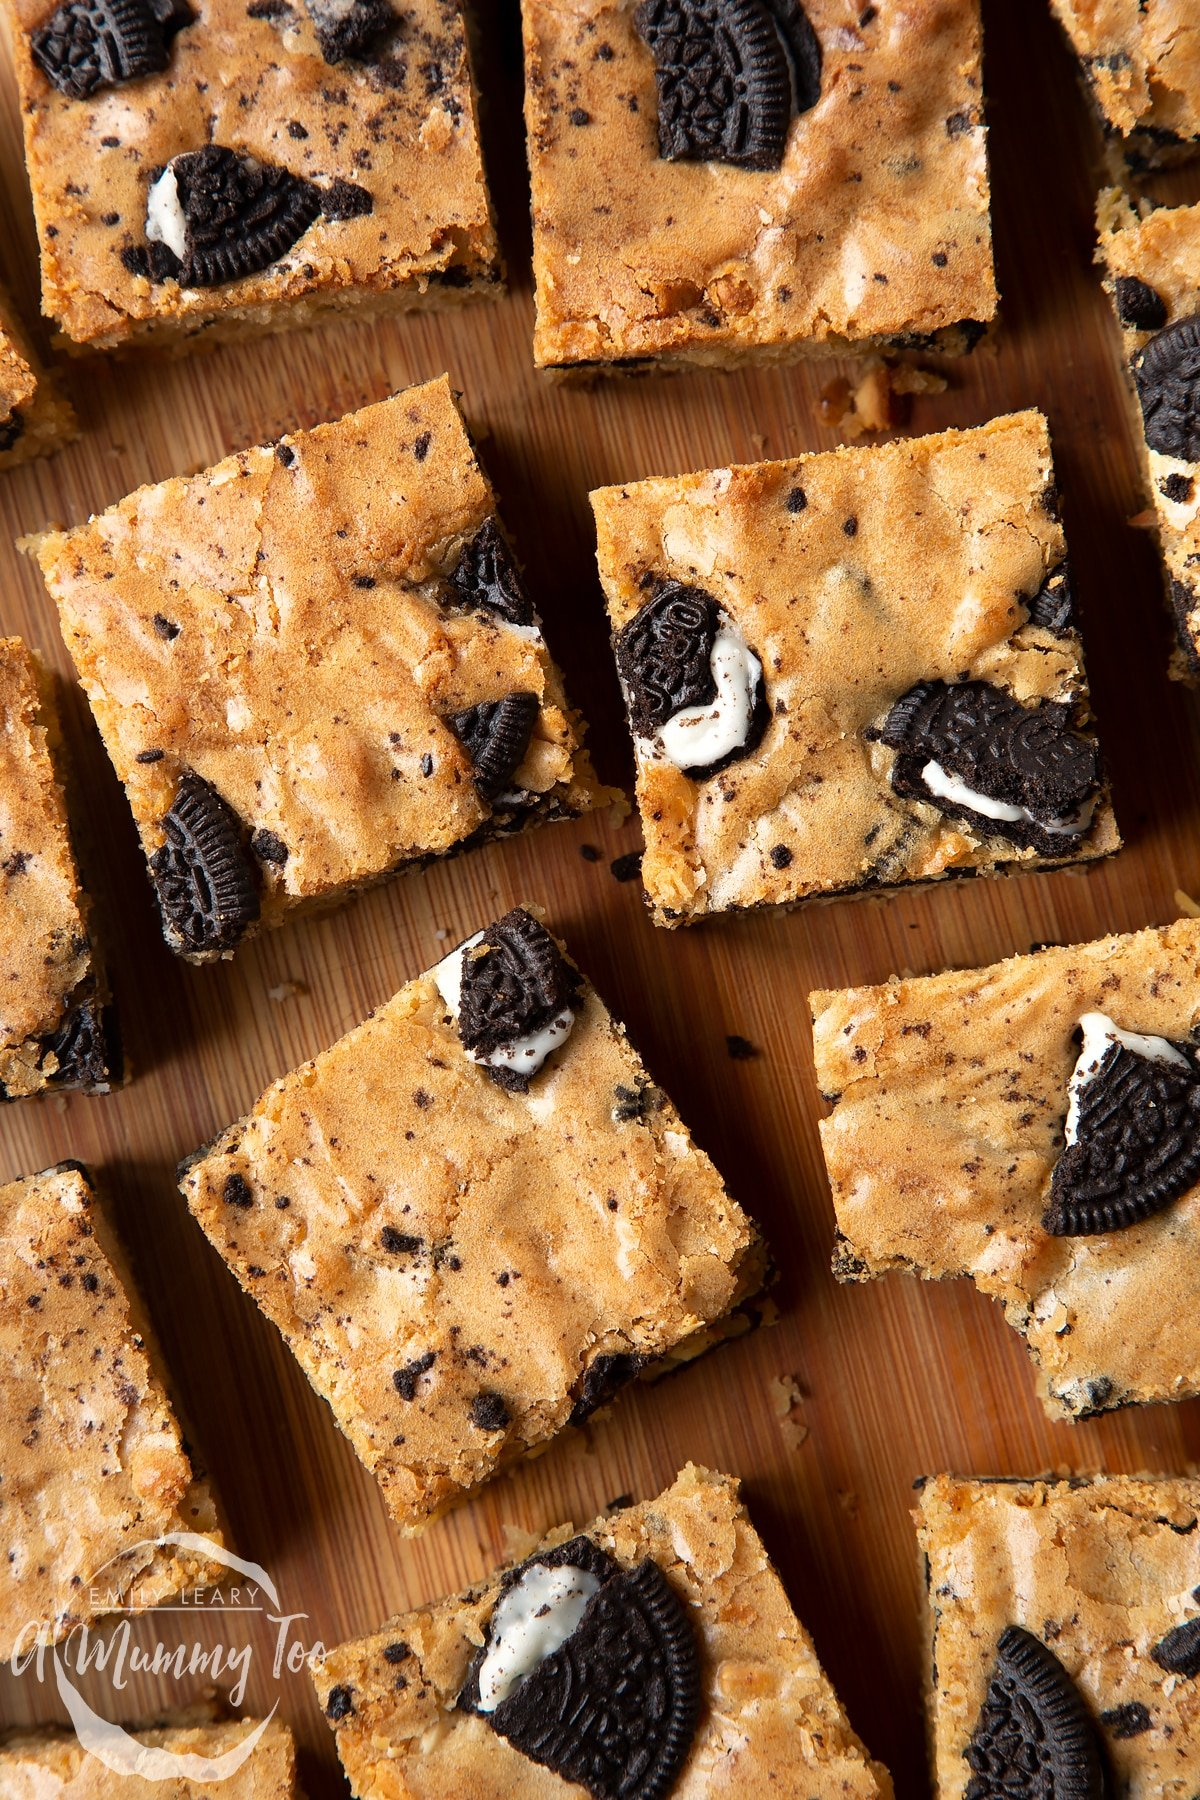 Overhead shot of square Oreo Blondies on a wooden board with the A Mummy Too logo in the corner